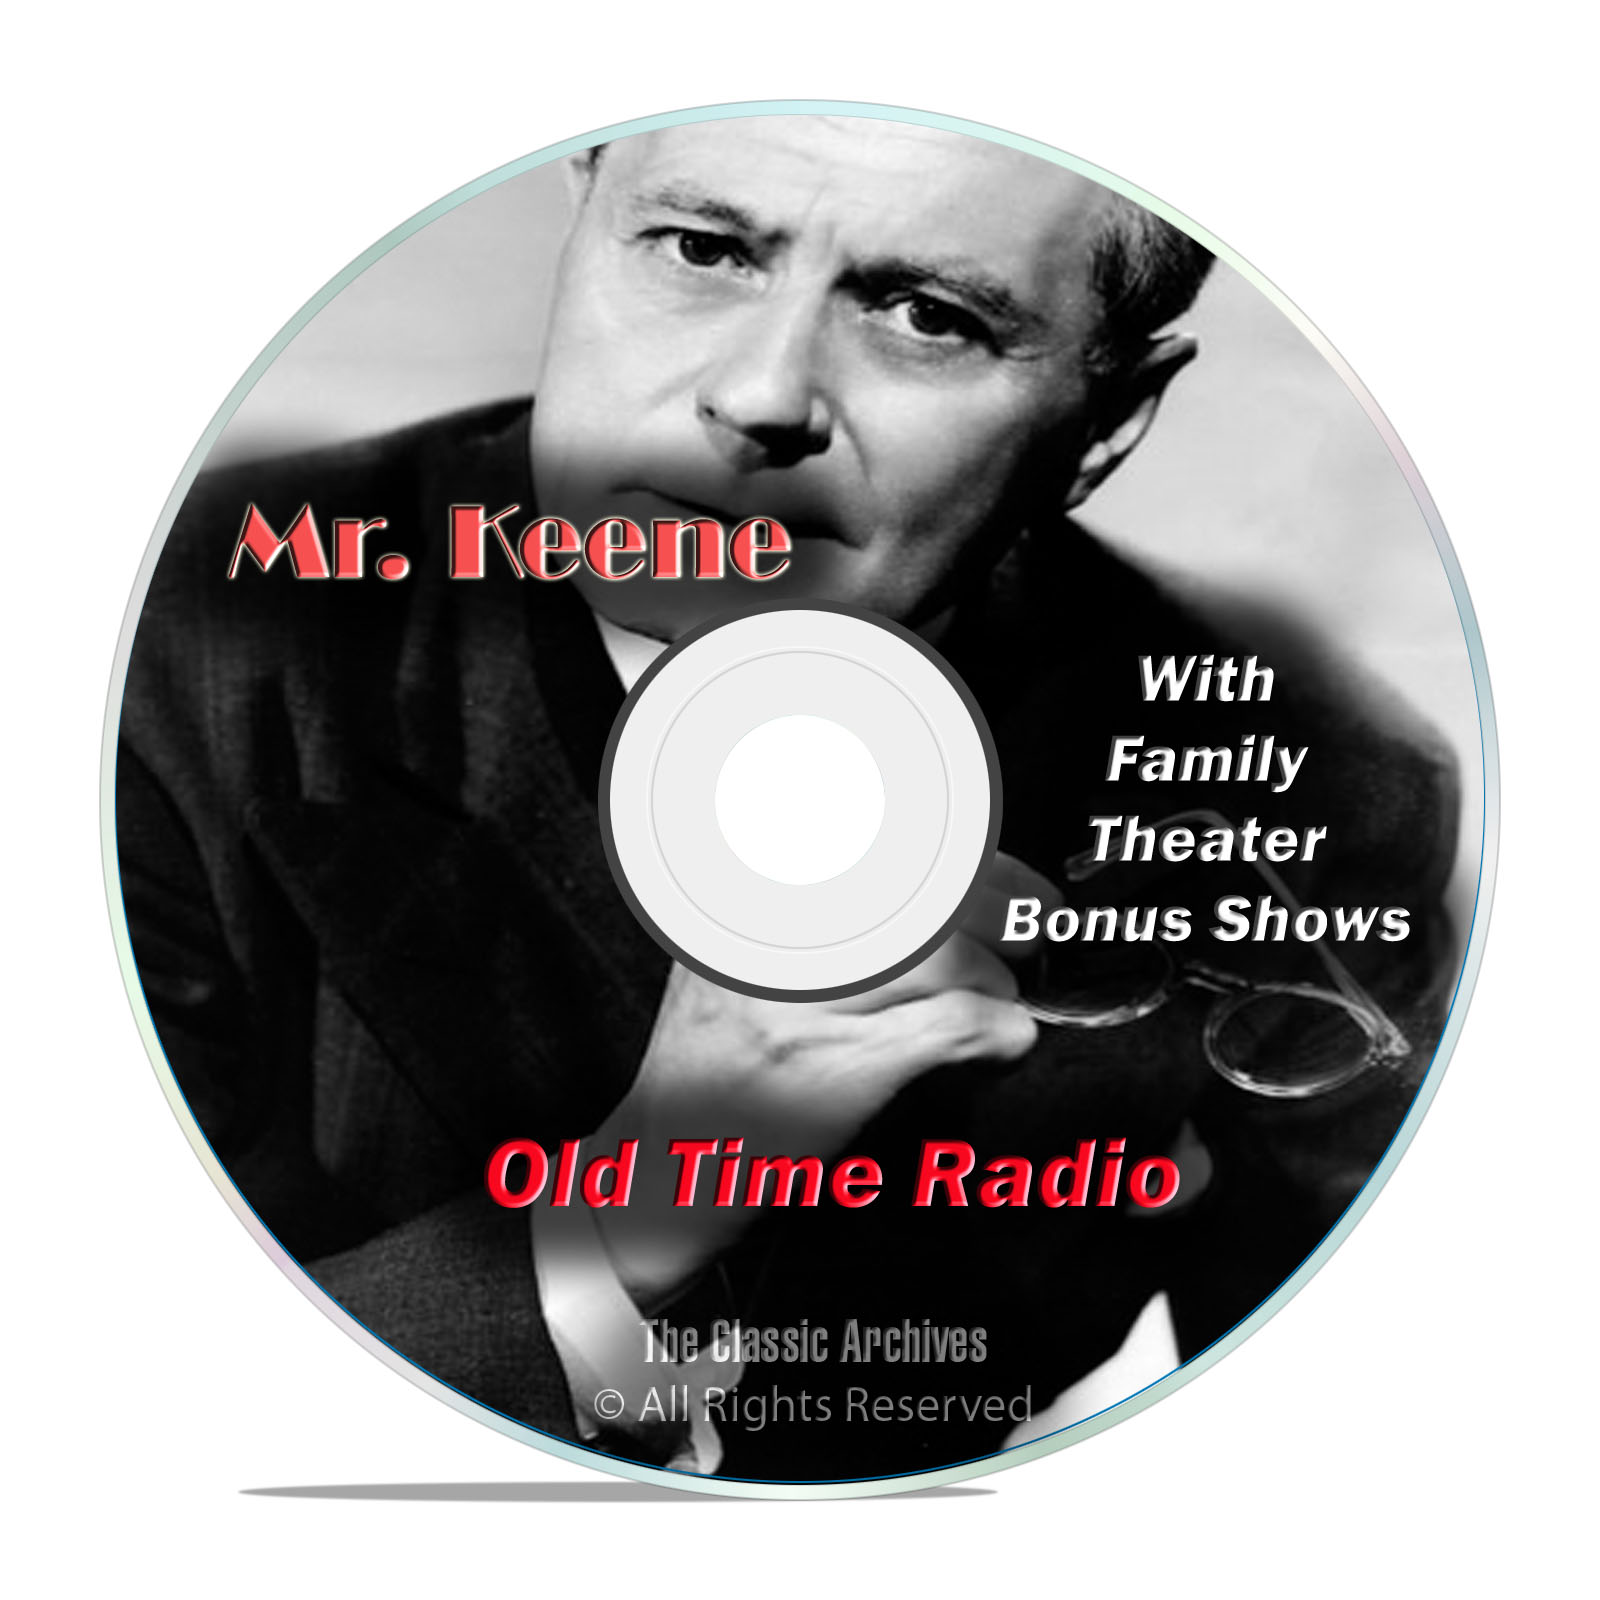 Mr. Keene, Tracer of Lost Persons, 601 Classic Old Time Radio Shows, OTR